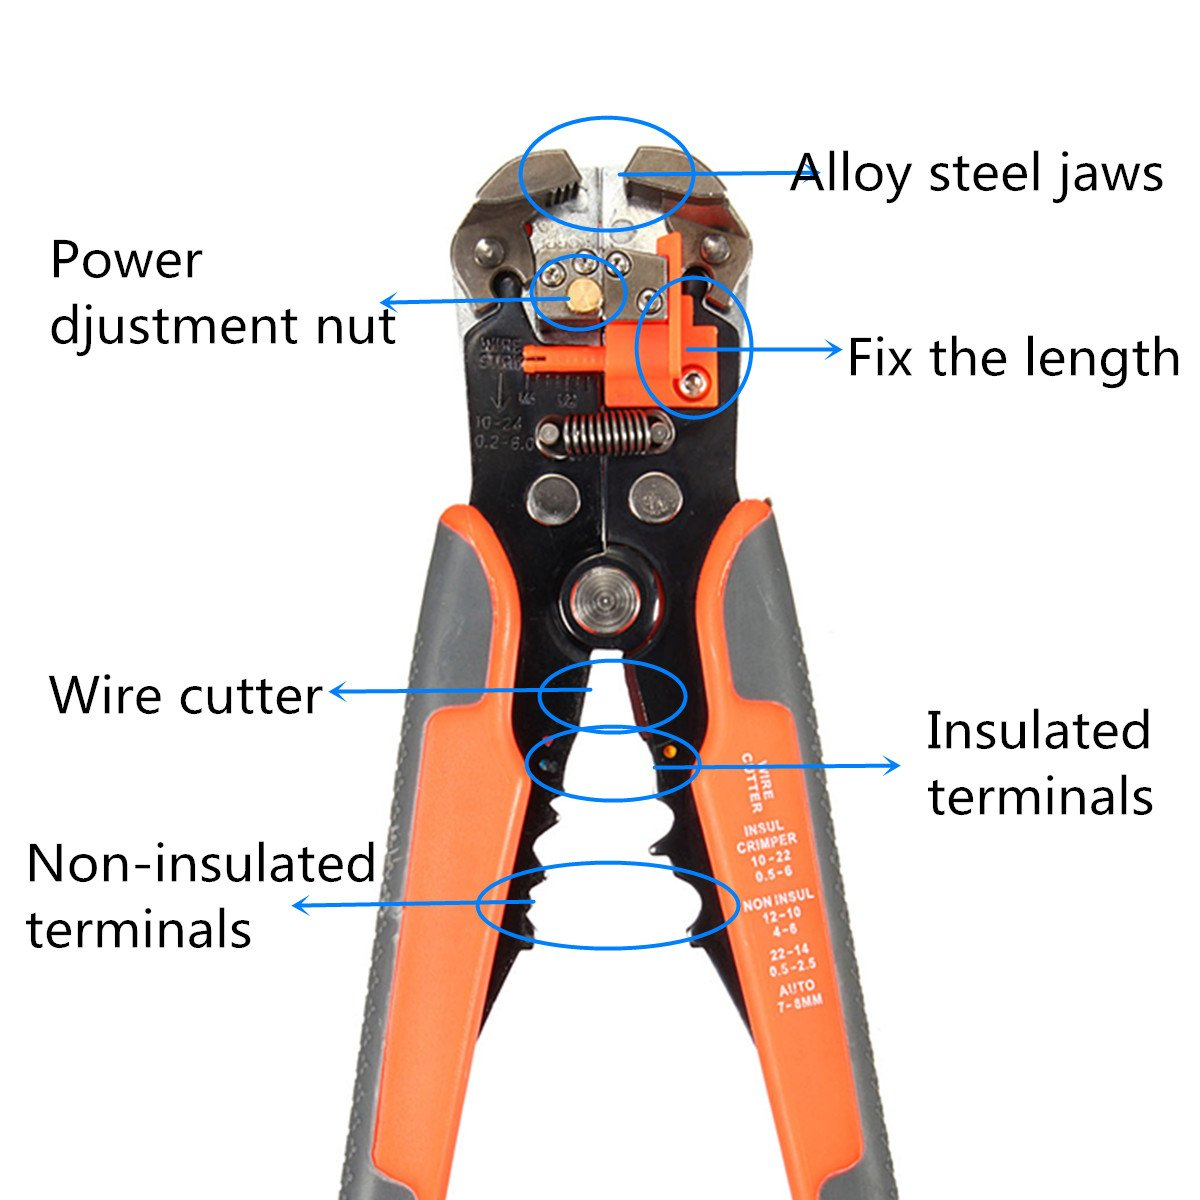 Agile-shop Professional Multifunction Automatic Wire Cutter Stripper Crimper Pliers Terminal Tool